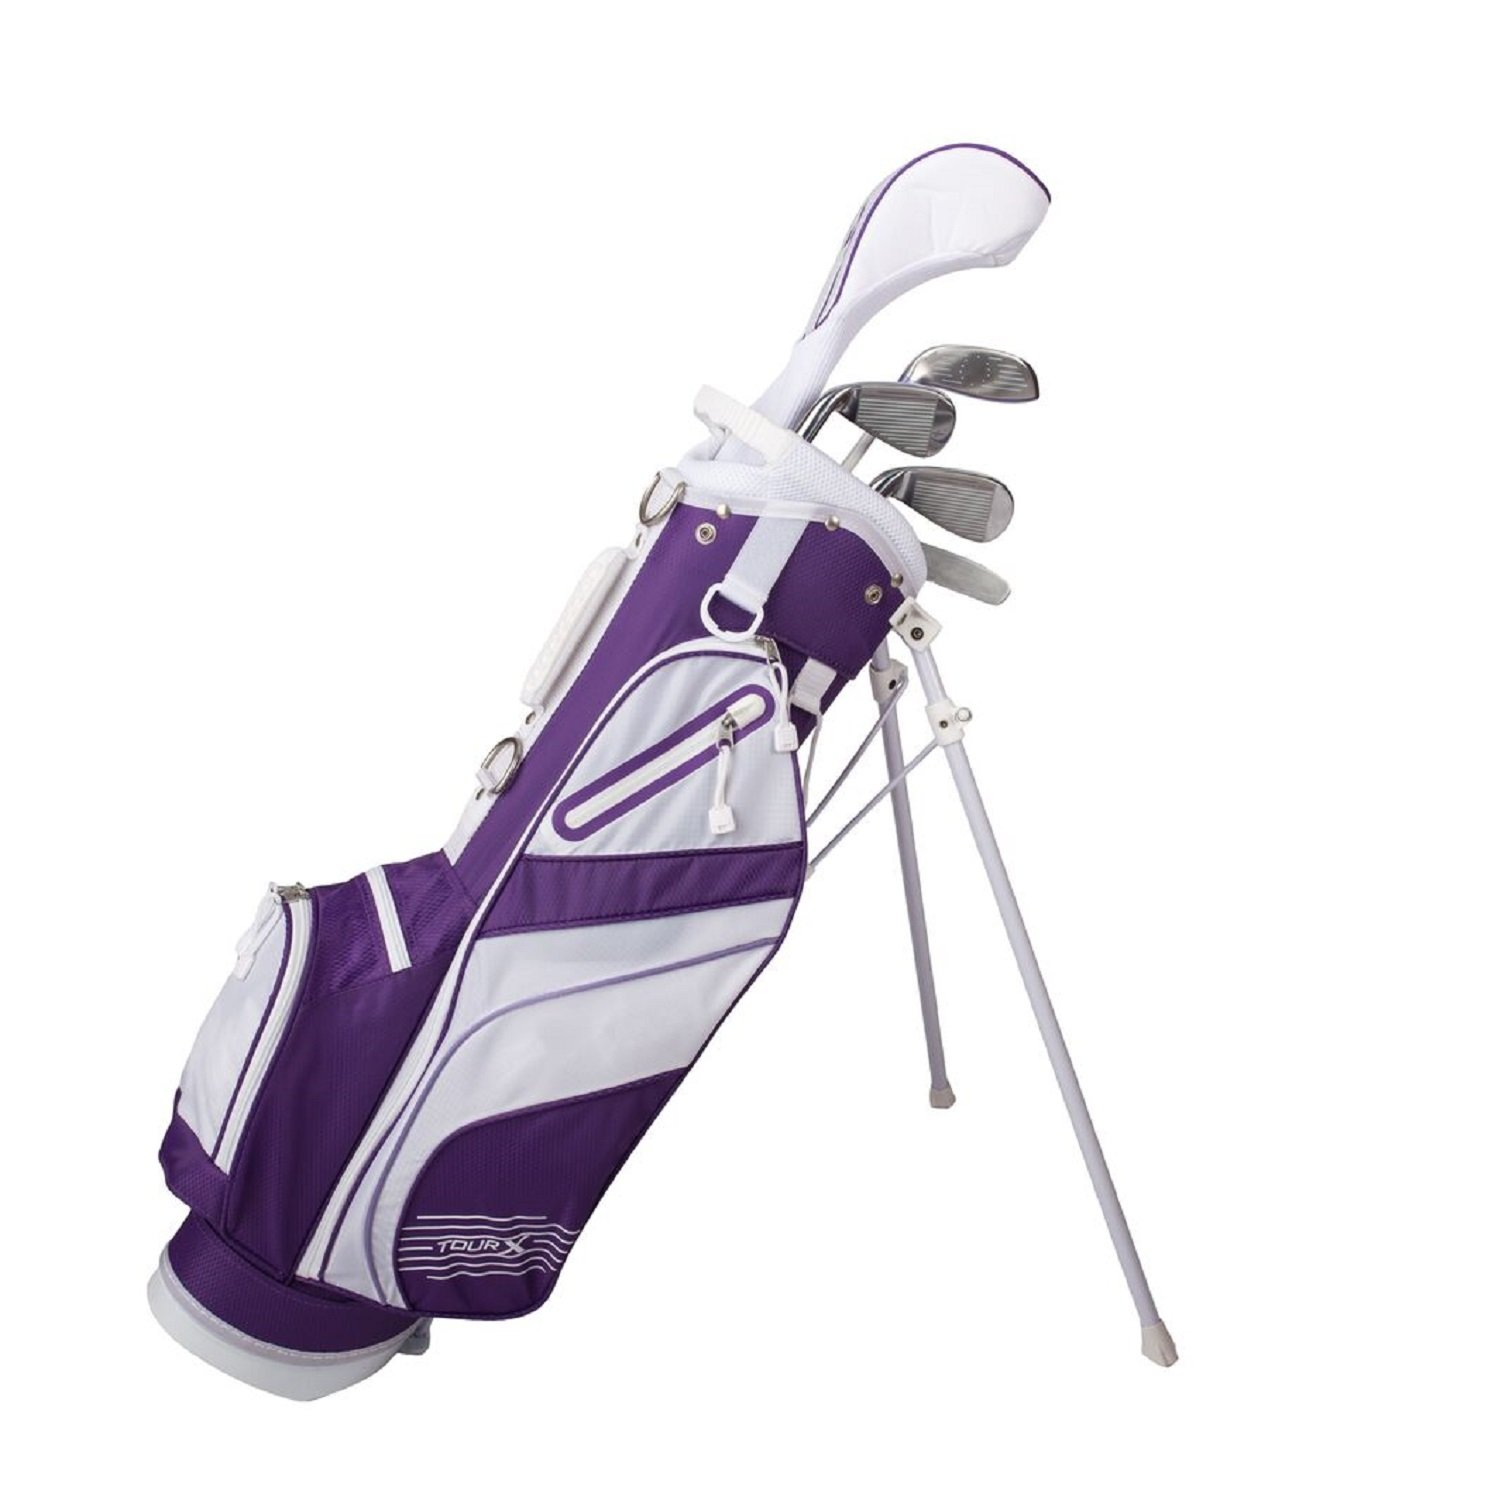 Merchants of Golf 23530 Golf Club Complete Sets, Purple by Merchants of Golf